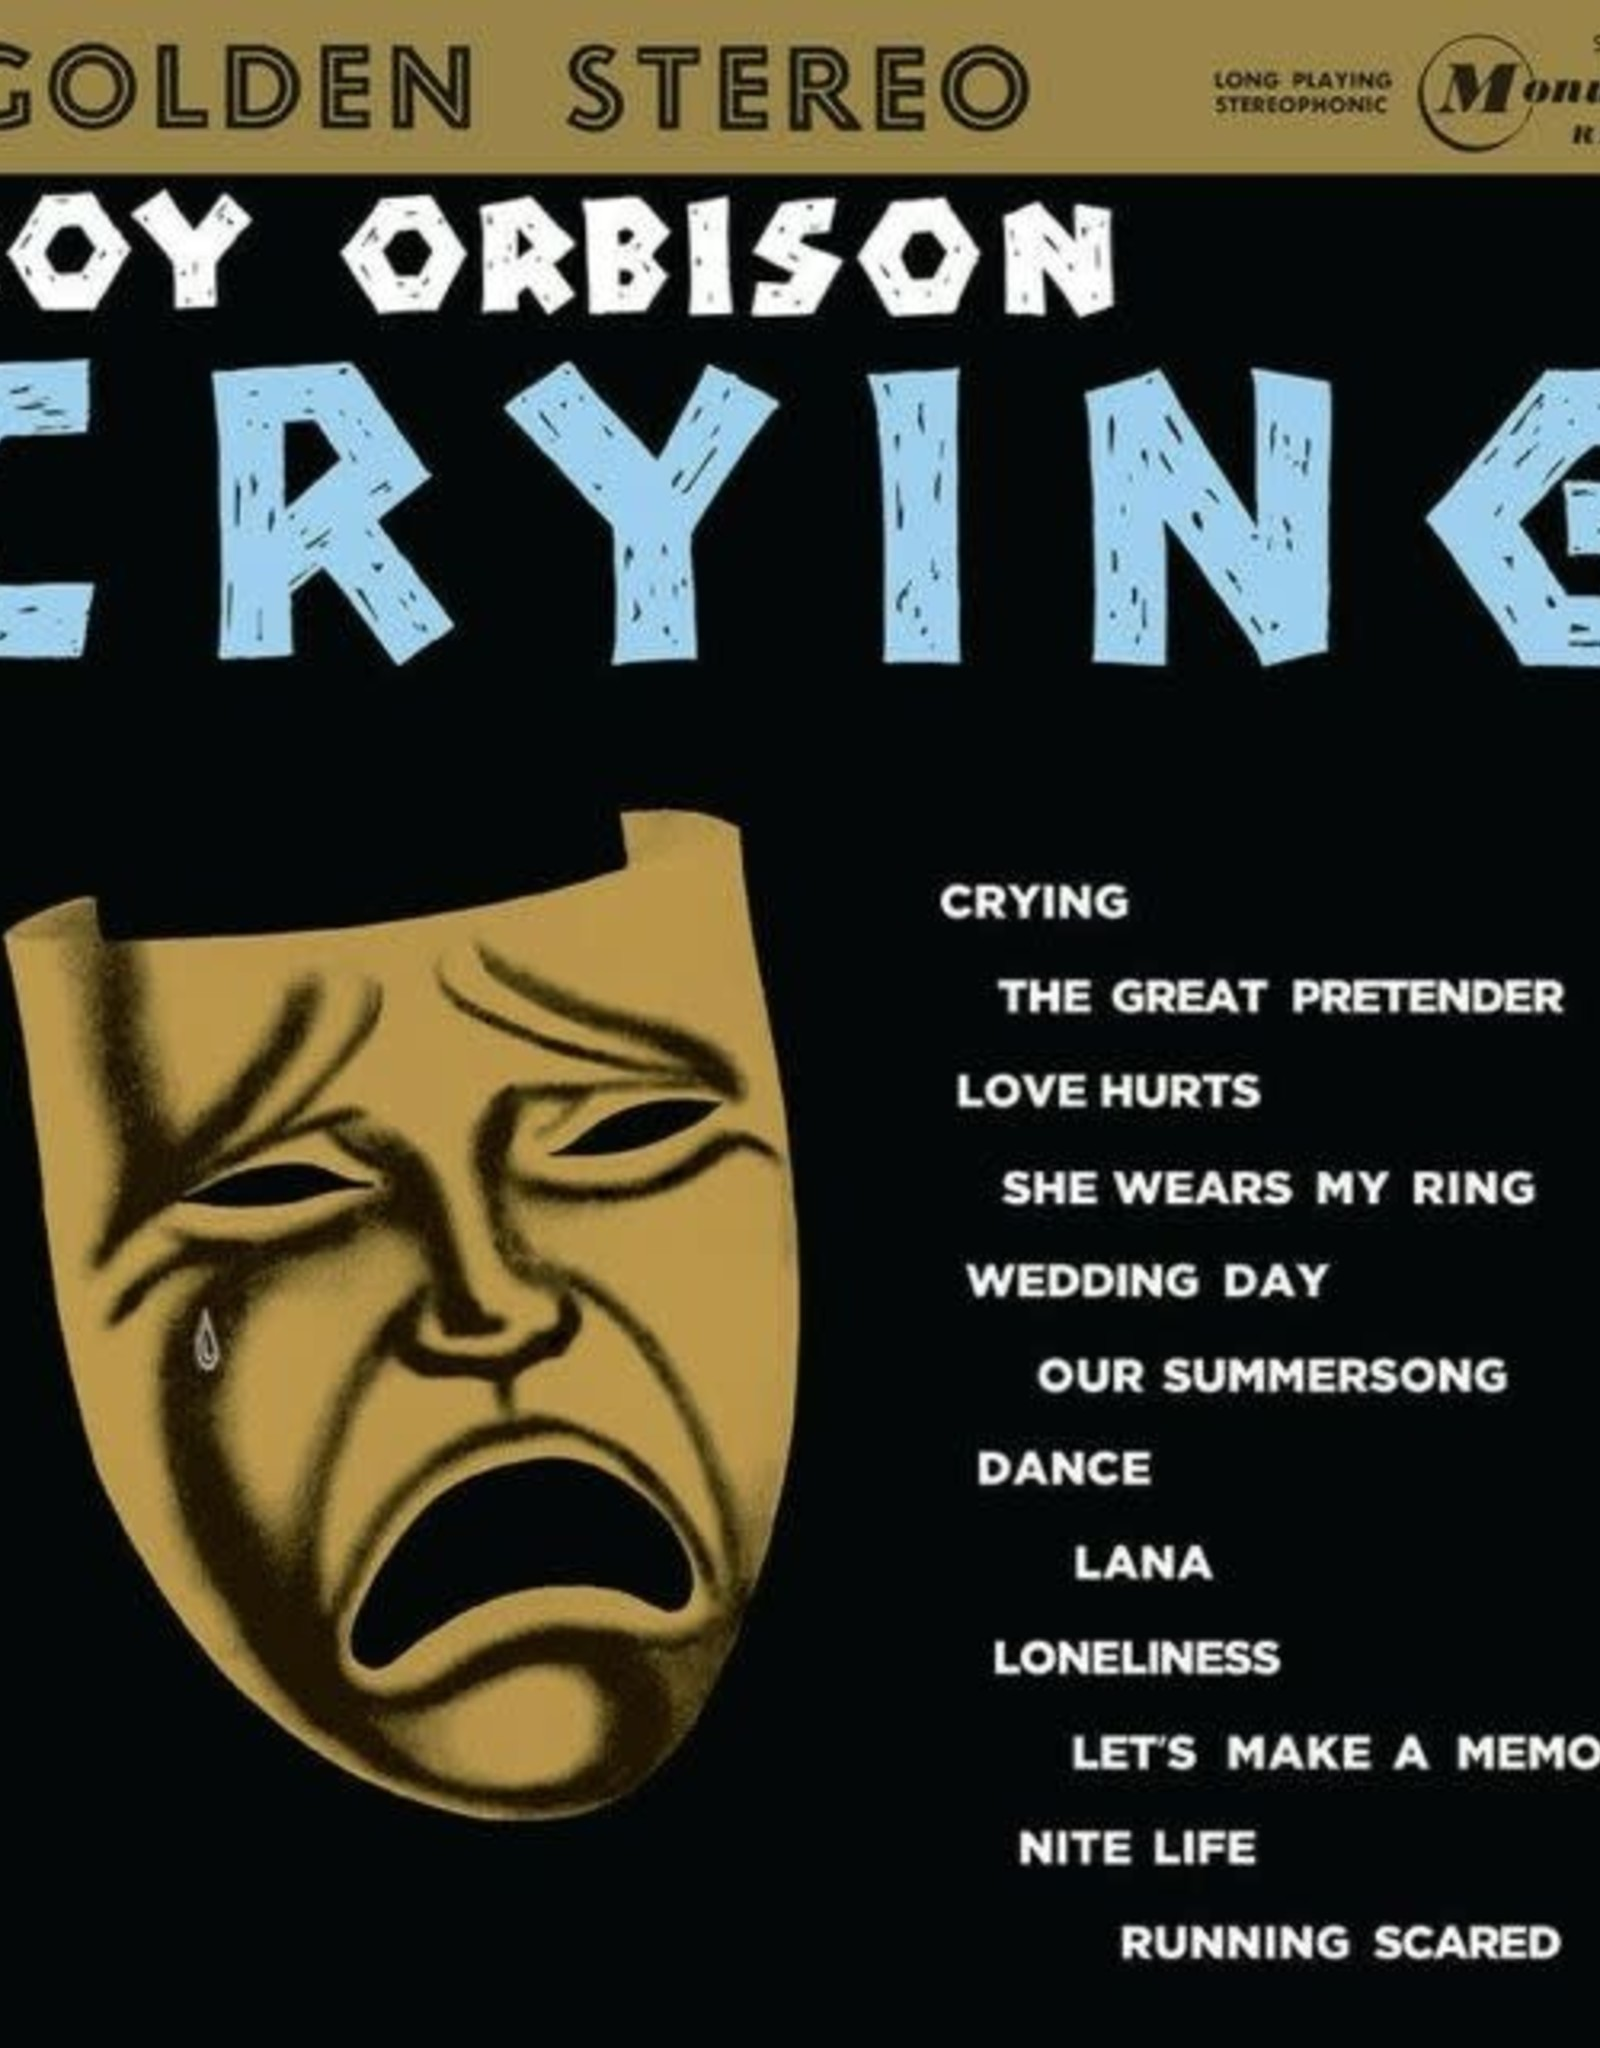 Roy Orbison - Crying (2 Lp, 200 Gram, 45 Rpm)